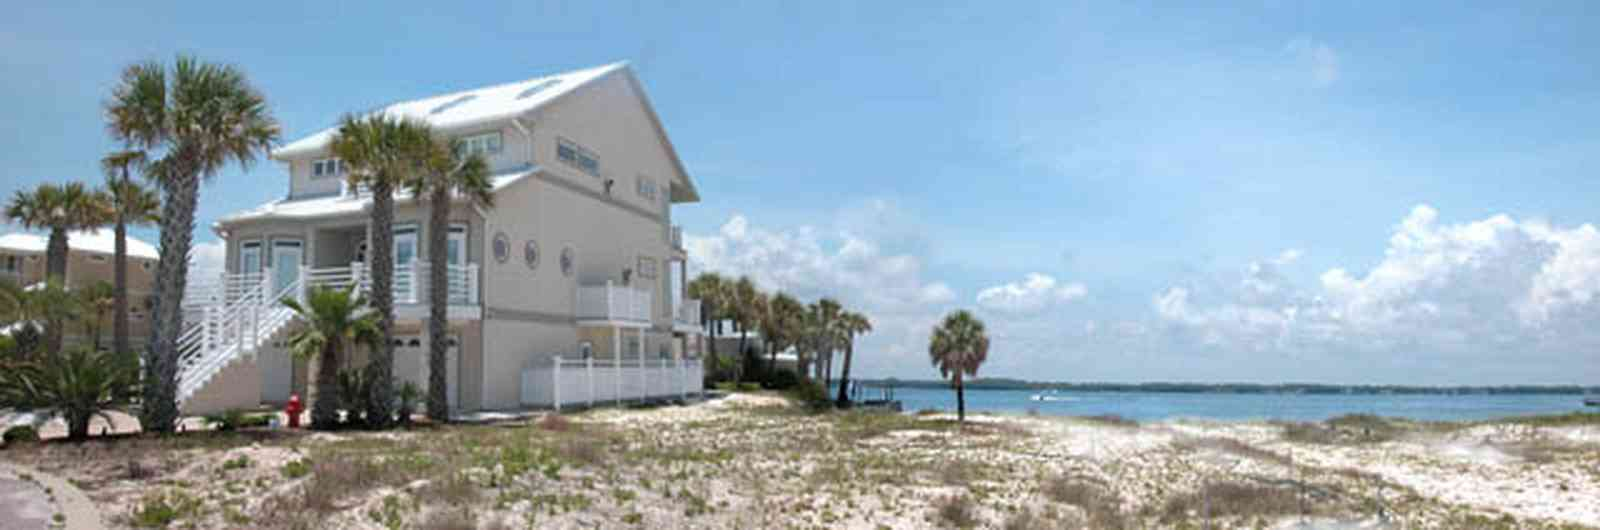 Navarre:-7332-Grand-Navarre-Blvd_02.jpg:  sand dune, palm trees, beach house, santa rosa sound, three-story house, luxury home, cumulus clouds